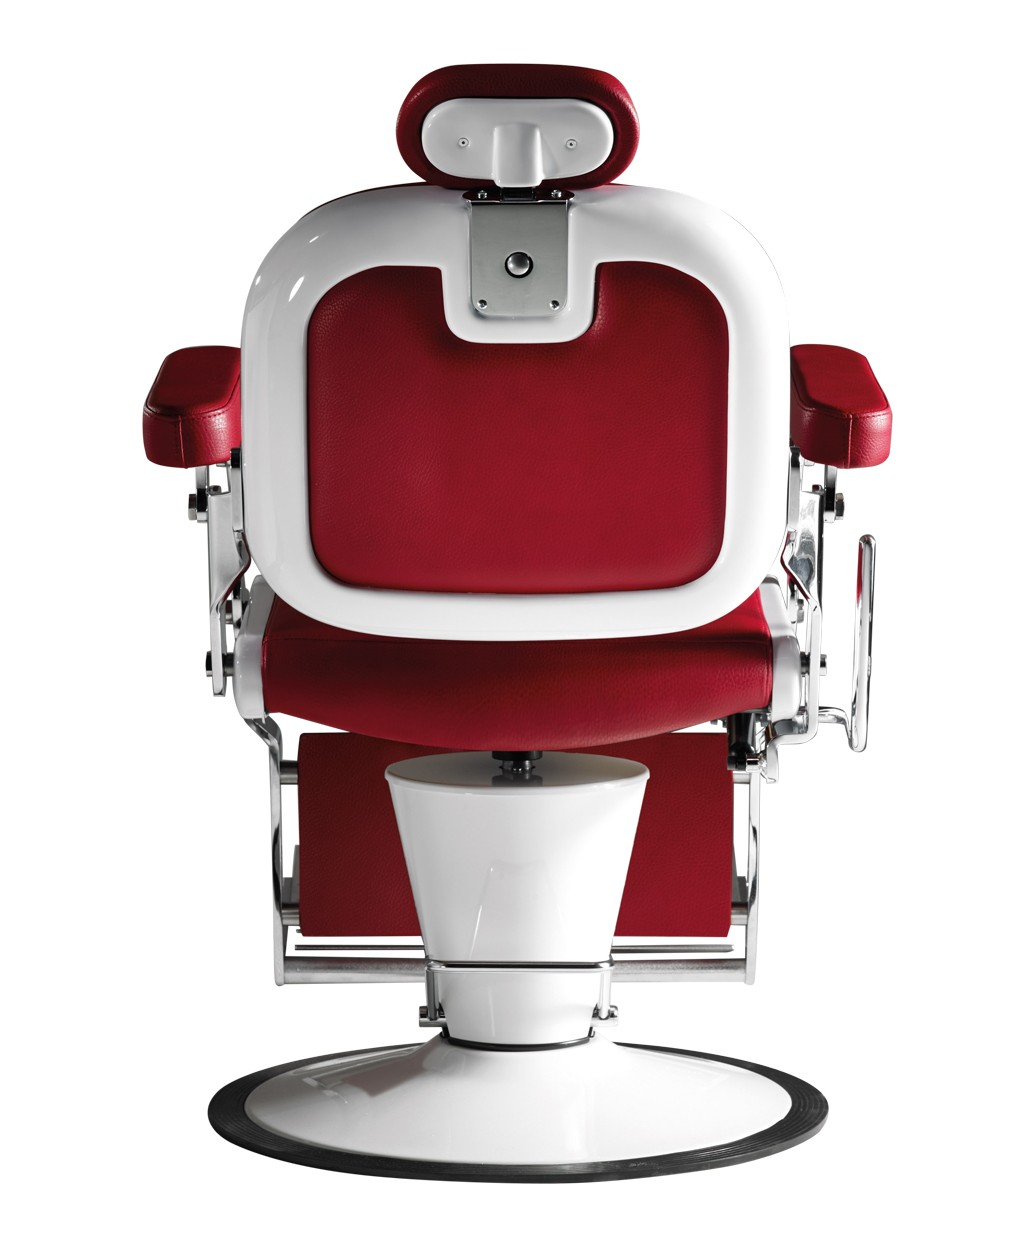 Old School Barber Chair Salon Ambience Sh277 6 Premier Italian Barber Chair